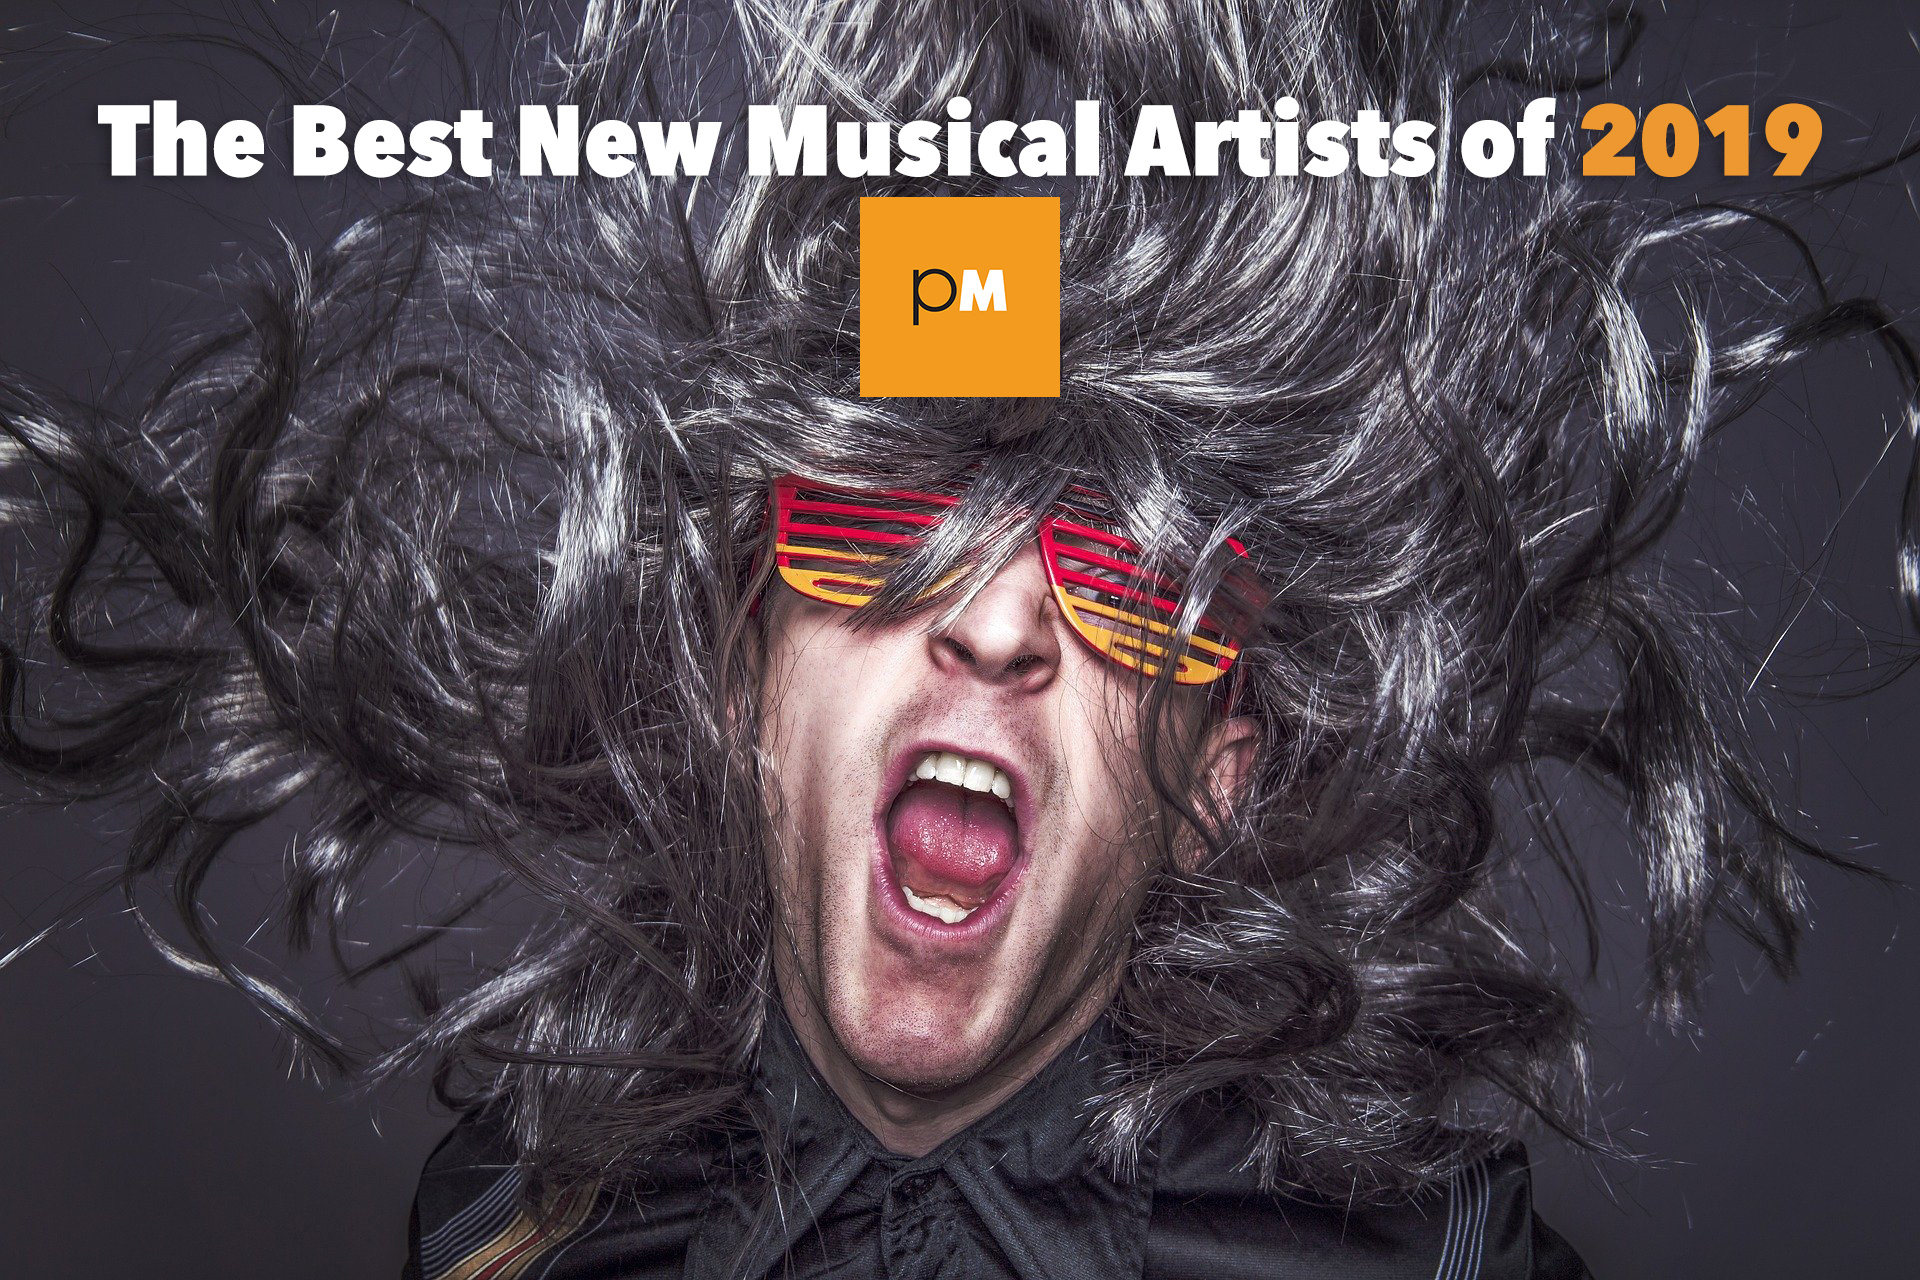 The Best New Musical Artists of 2019